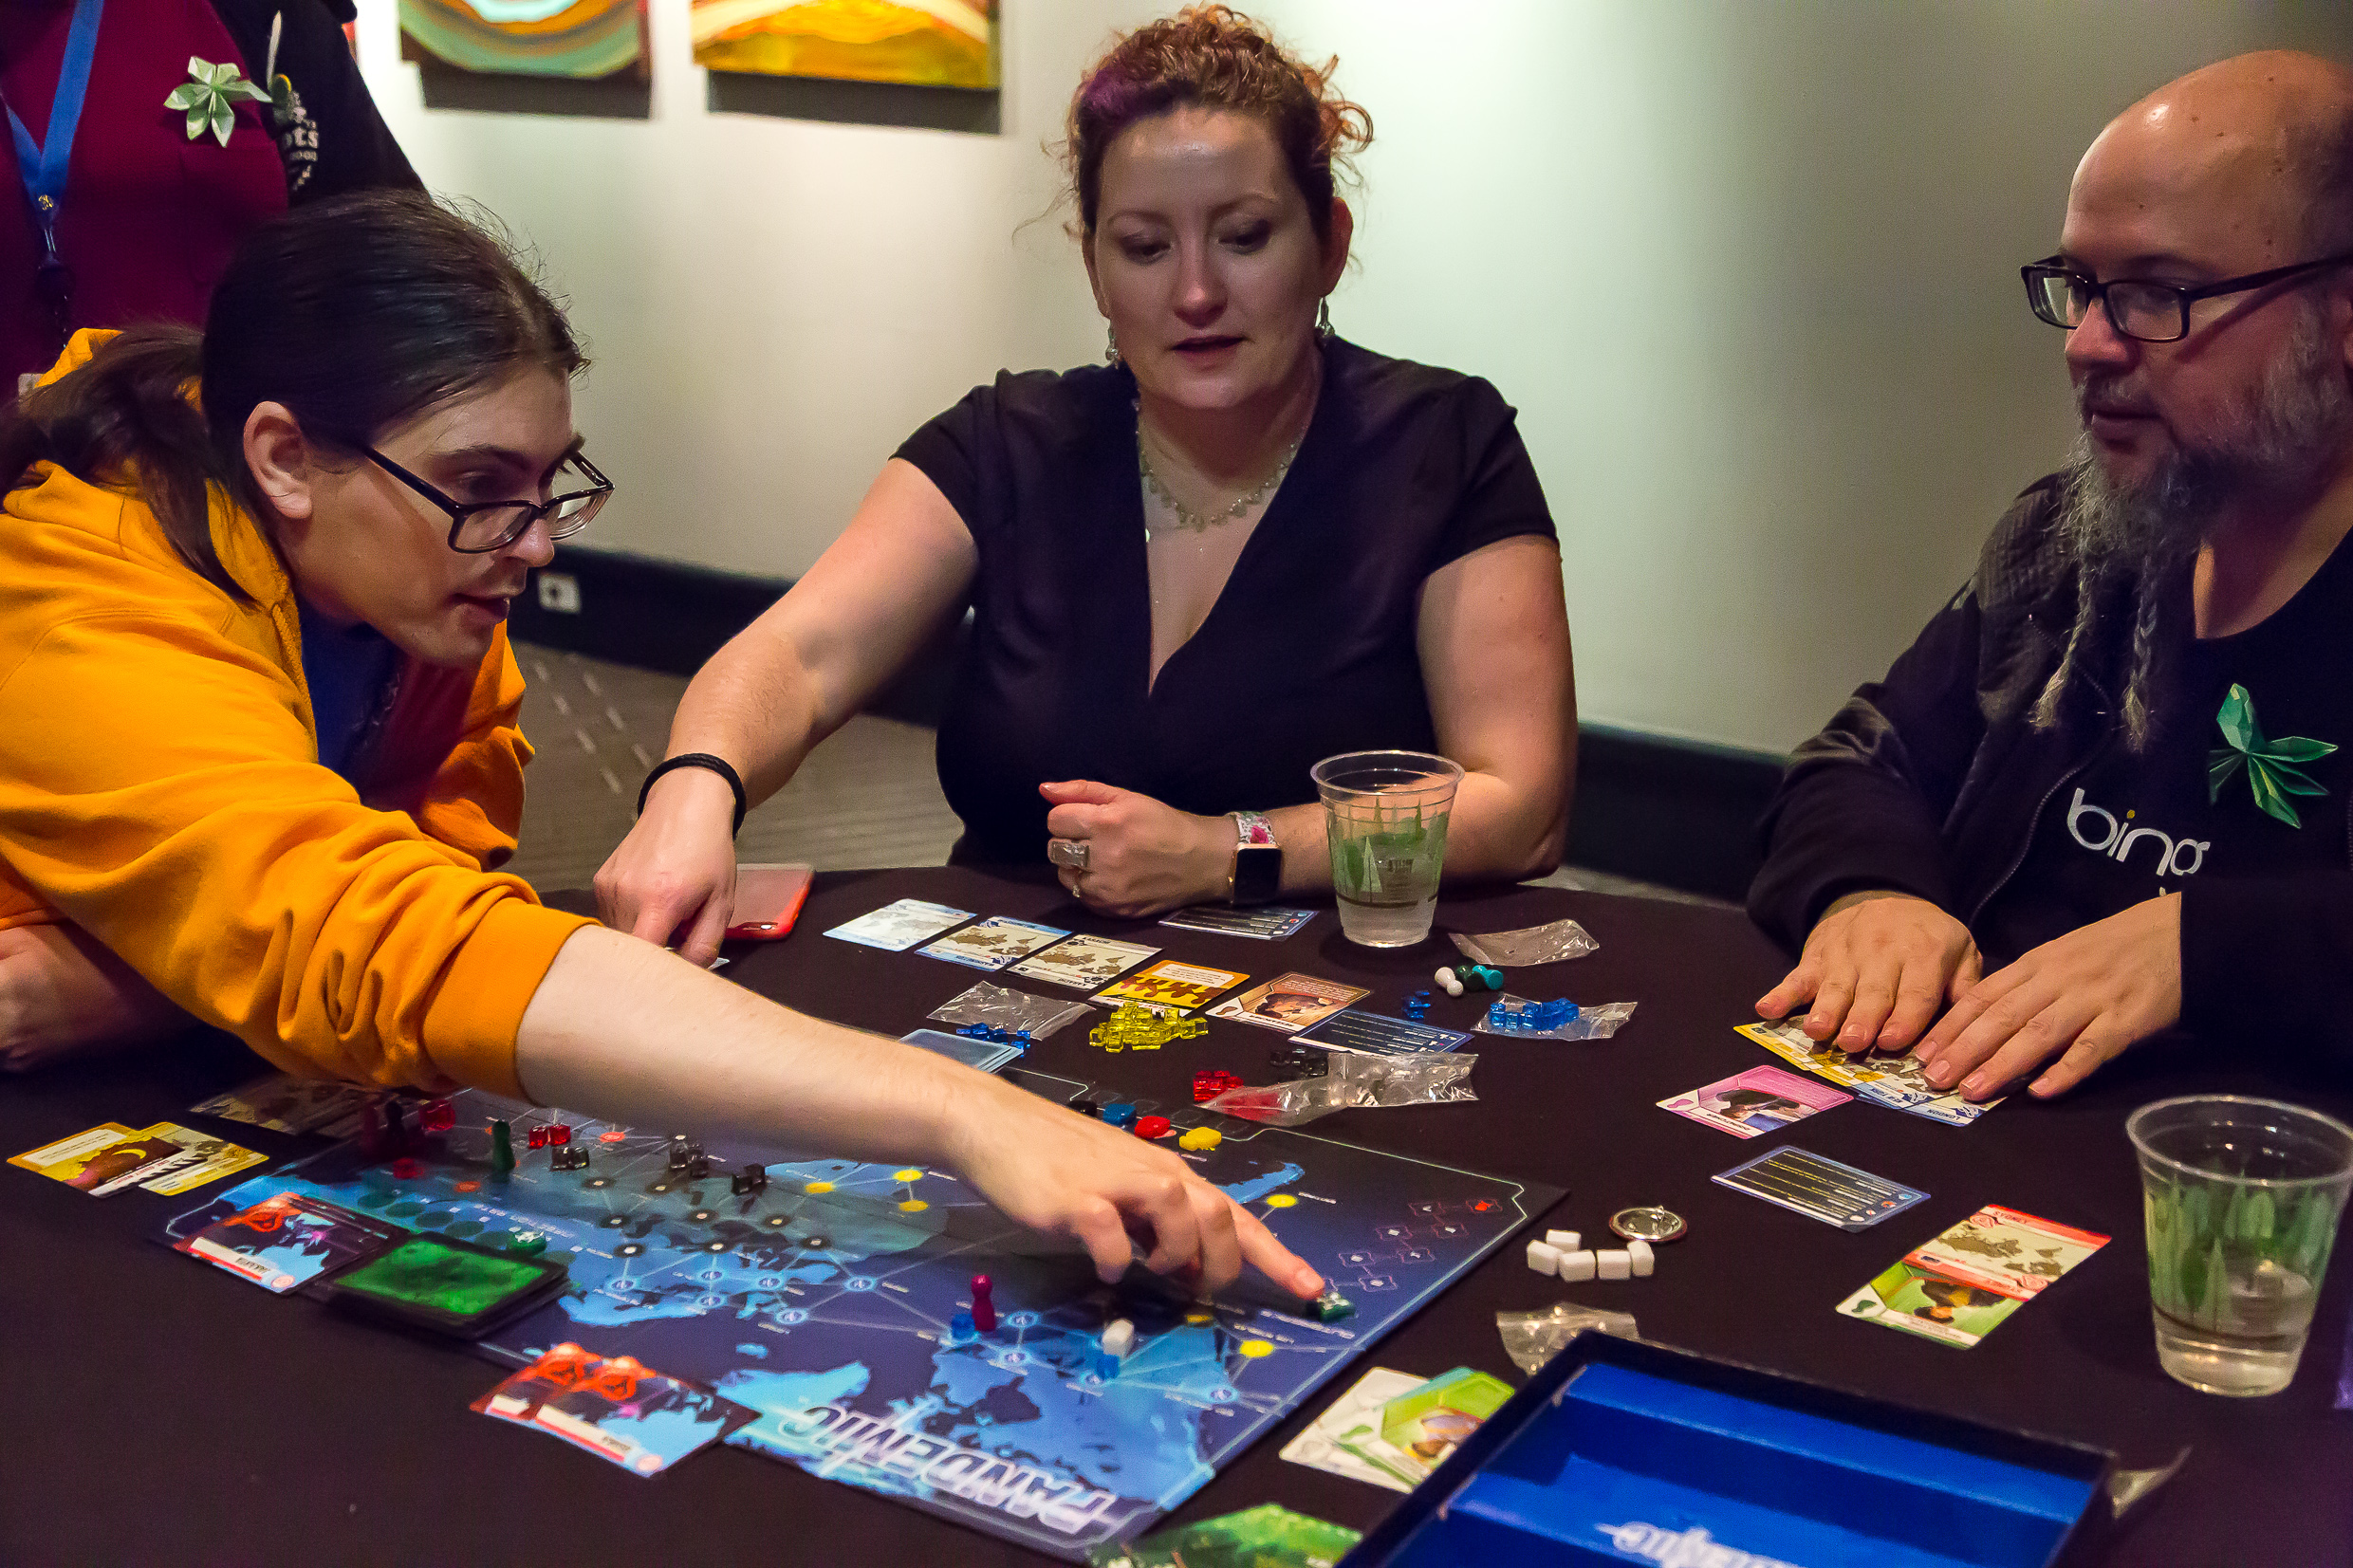 Another outbreak occurs in Pandemic! -FTW Events Game Night